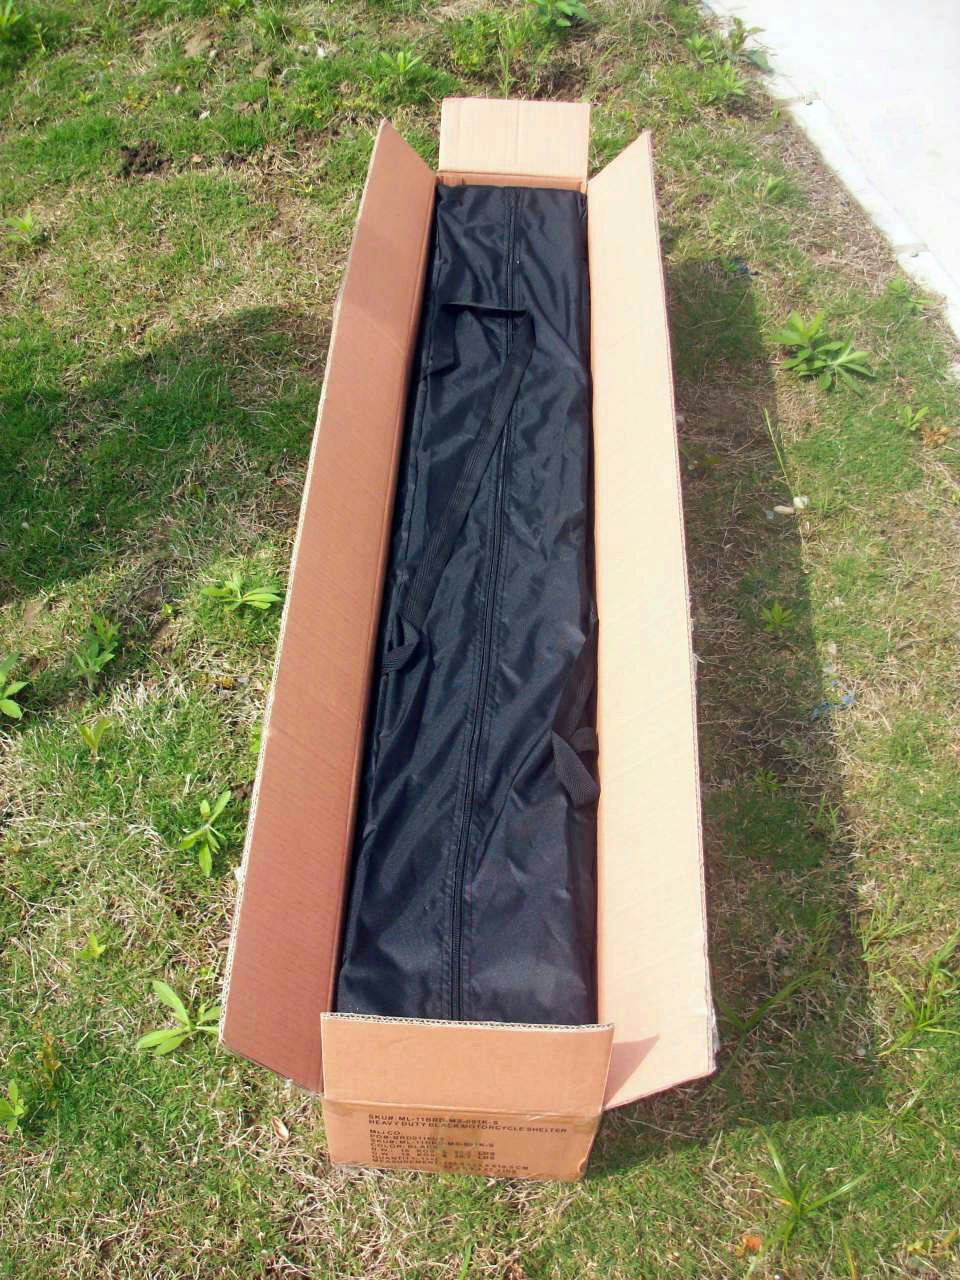 Quictent-Heavy-Duty-Motorcycle-Shelter-Shed-Tourer-Cover- & Quictent® Heavy Duty Motorcycle Shelter Shed Tourer Cover Storage ...